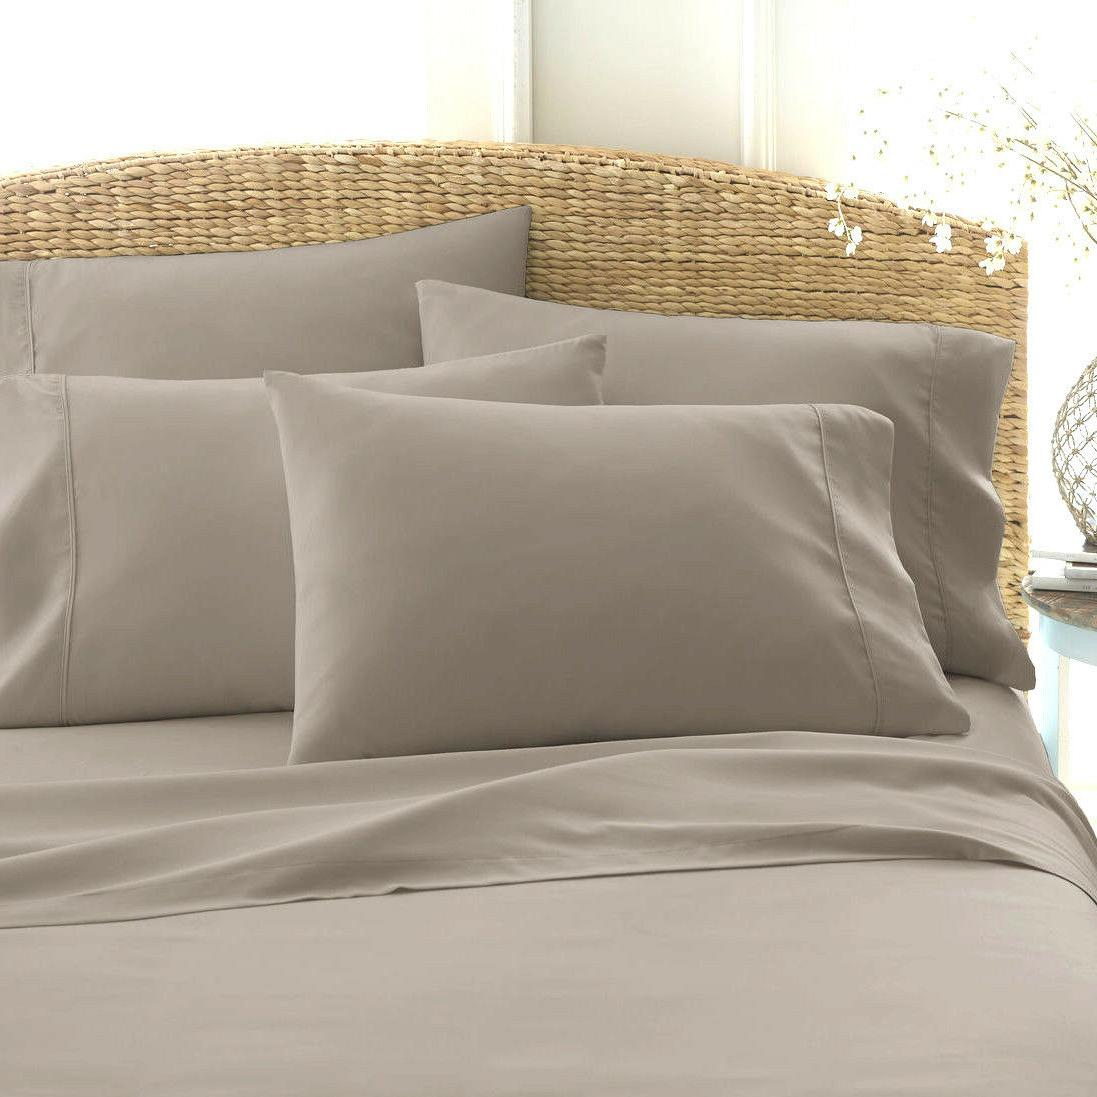 HIGH QUALITY ULTRA BED SET